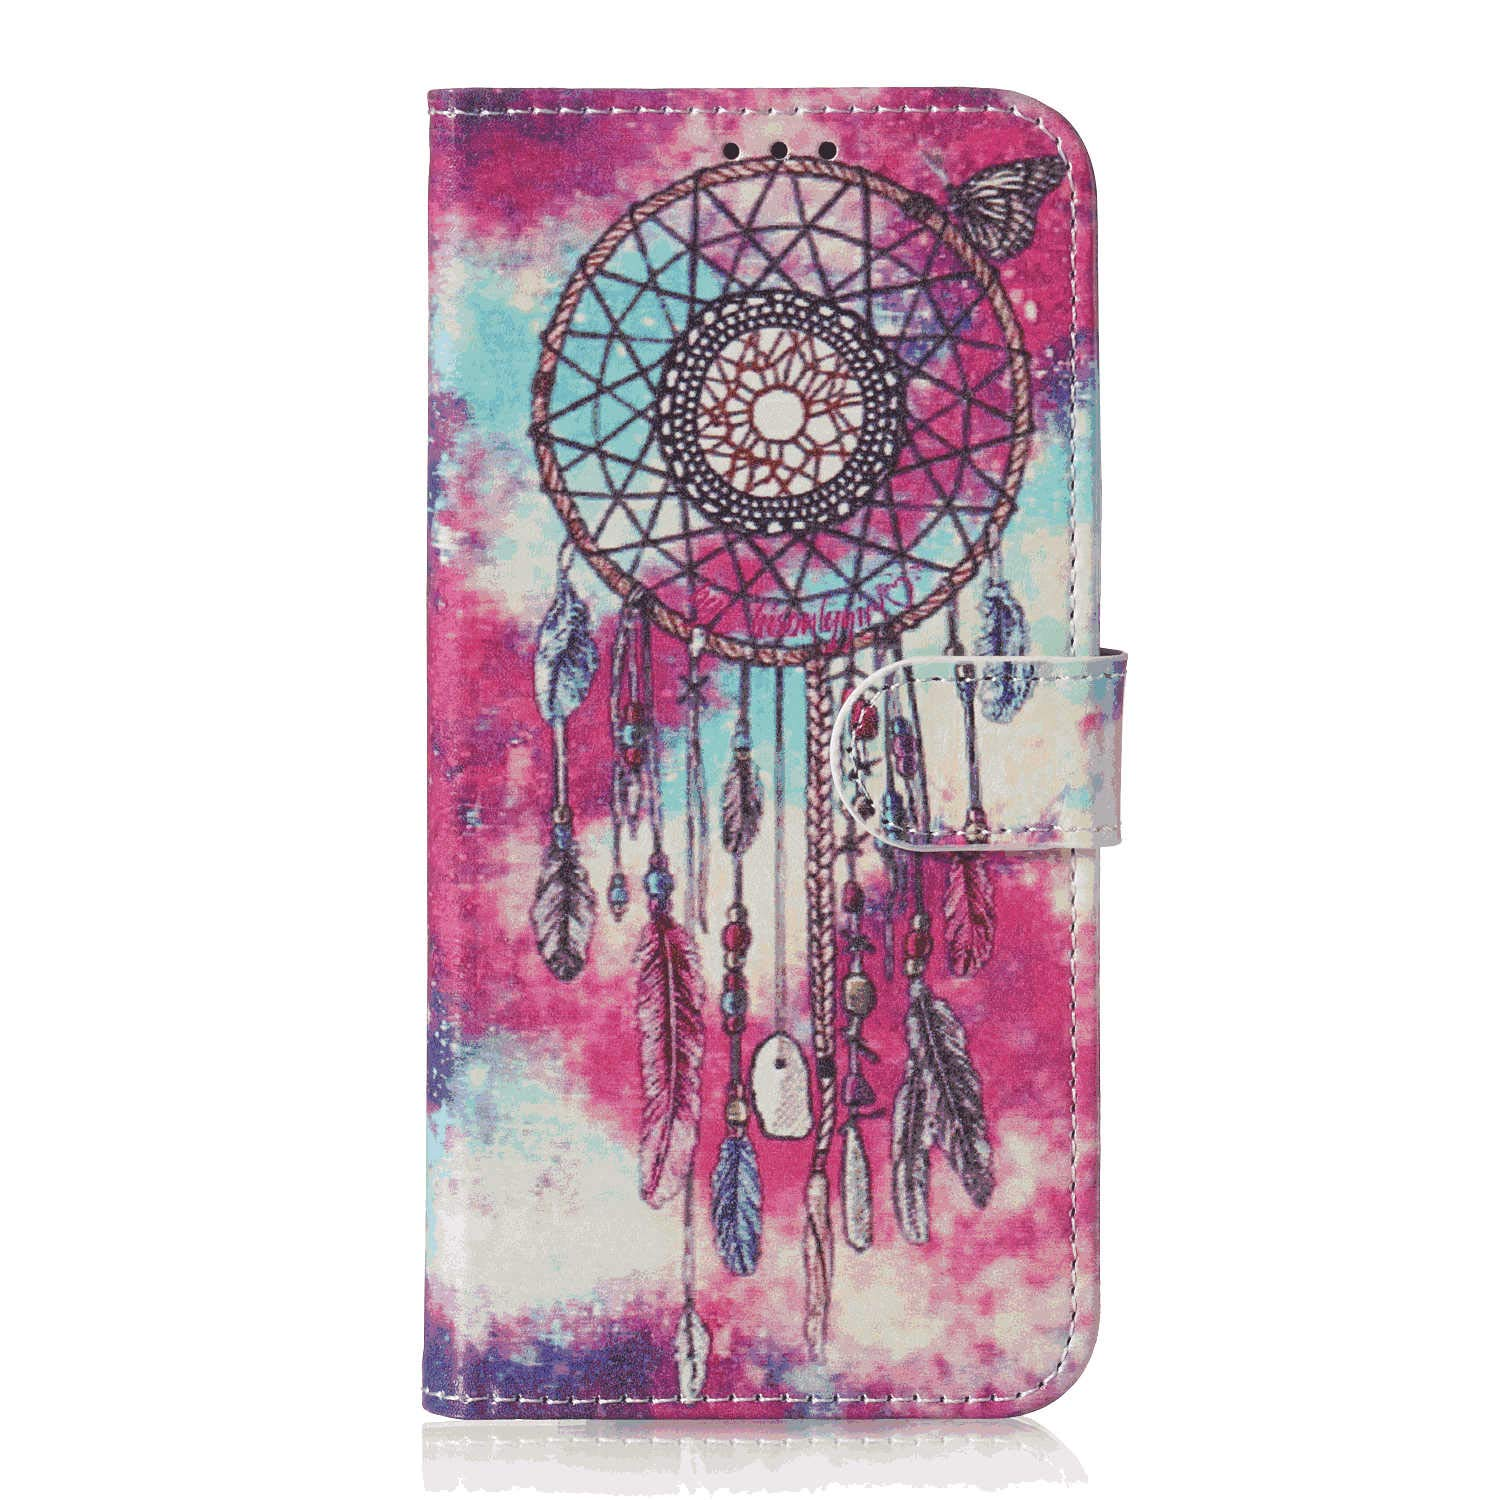 Huawei P30 Pro Flip Case, Cover for Leather Luxury Business Mobile Phone case Card Holders Kickstand Flip Cover